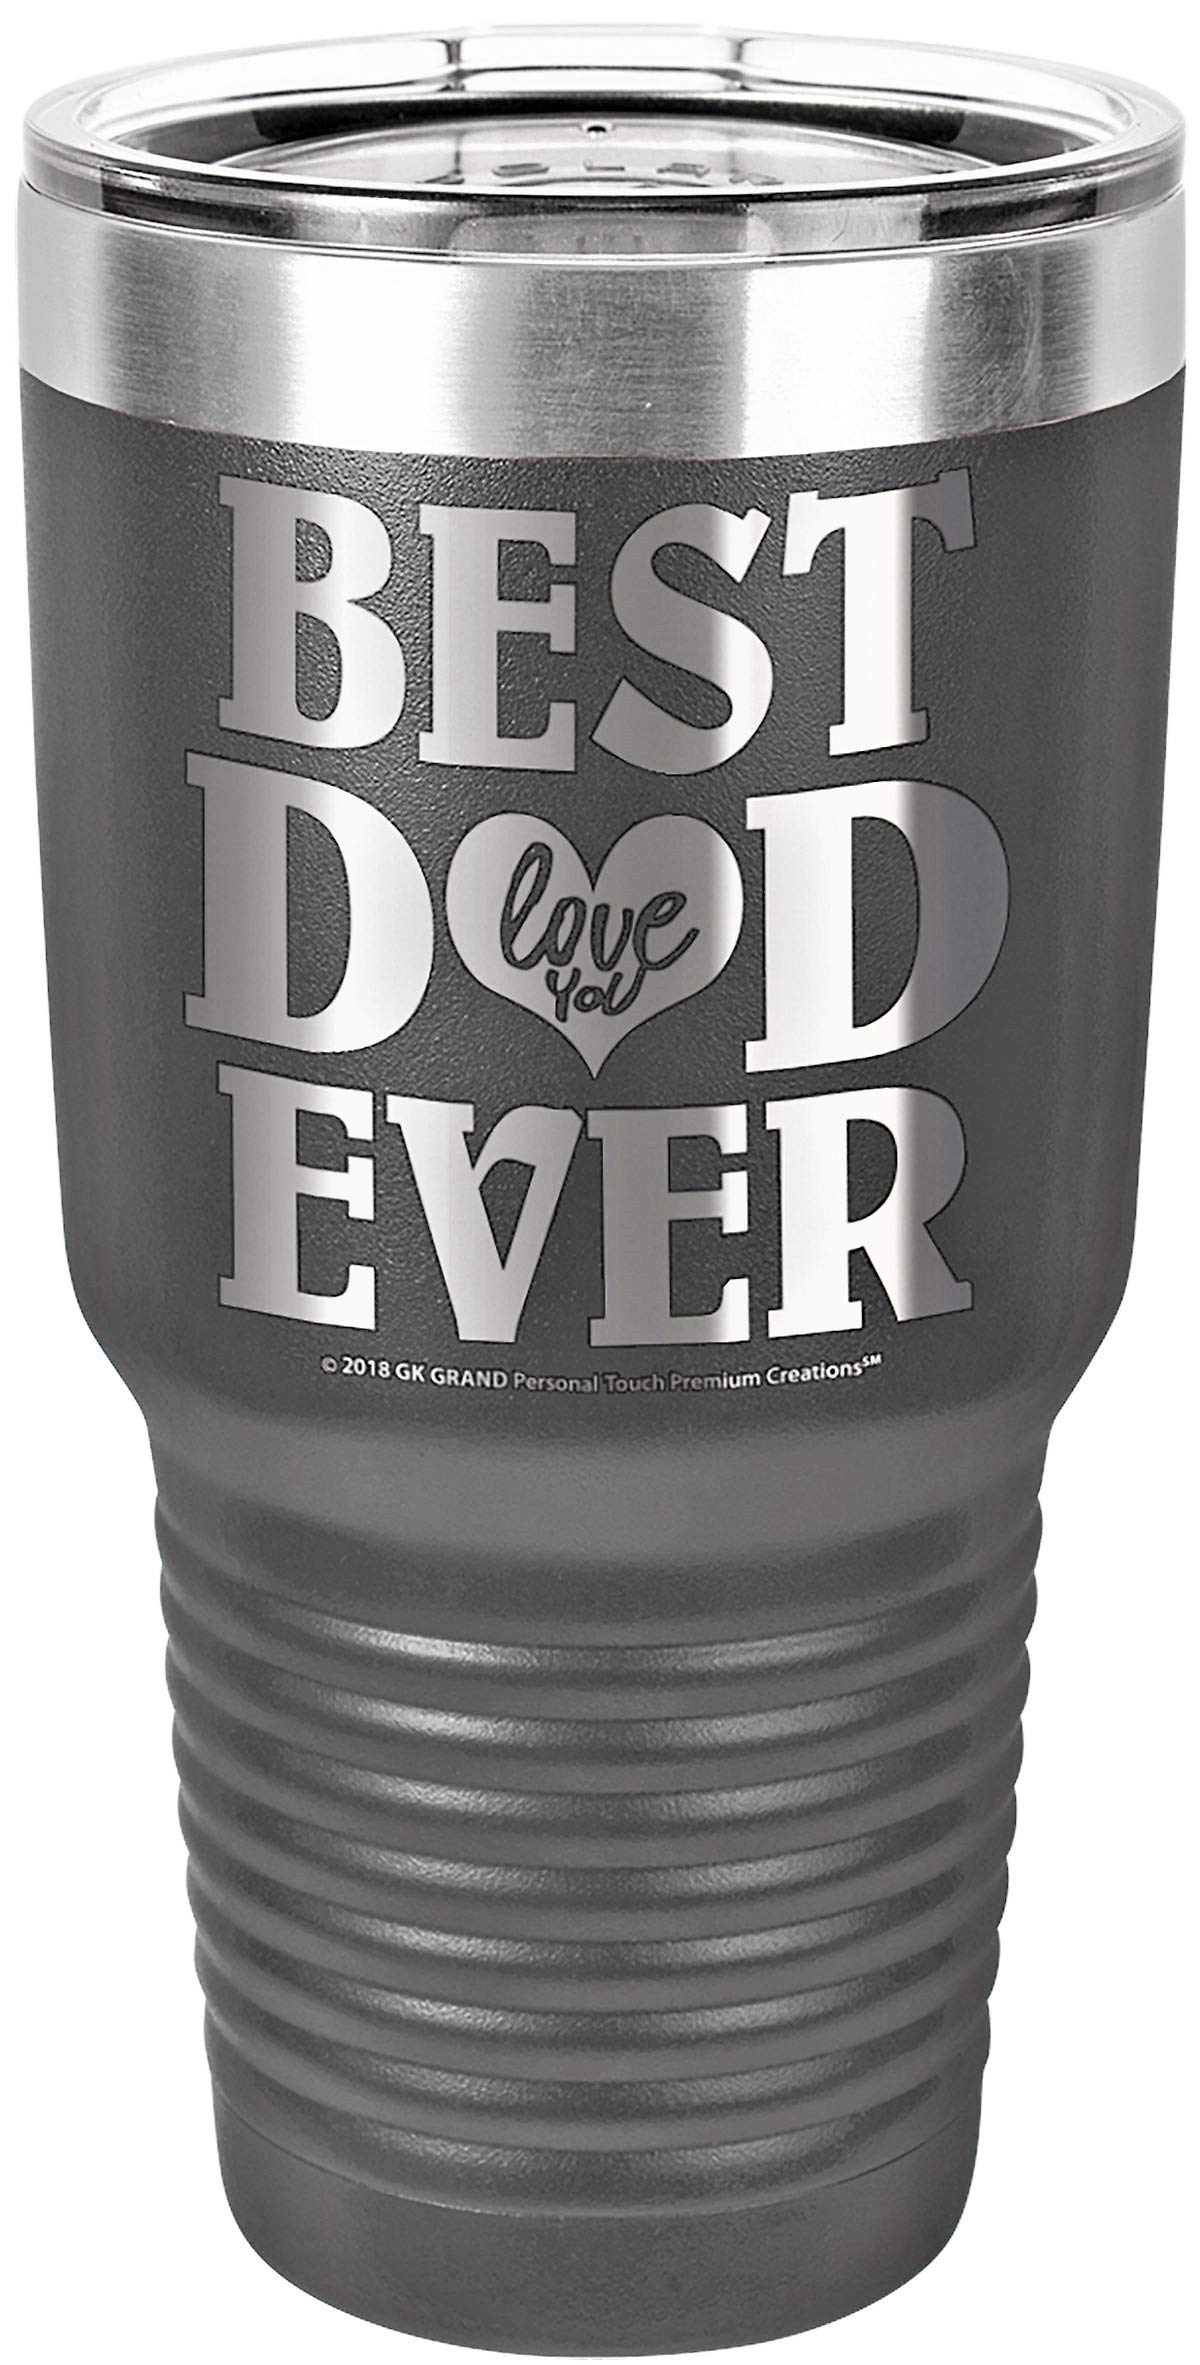 "GIFTS FOR DAD – ""BEST DAD EVER ~ LOVE YOU"" GK Grand Engraved Stainless Steel Vacuum Insulated Tumbler Large Travel Coffee Mug Hot & Cold Drinks Birthday Fathers Day Christmas Daddy (Gray, 30oz) by GK Grand Personal-Touch Premium Creations"